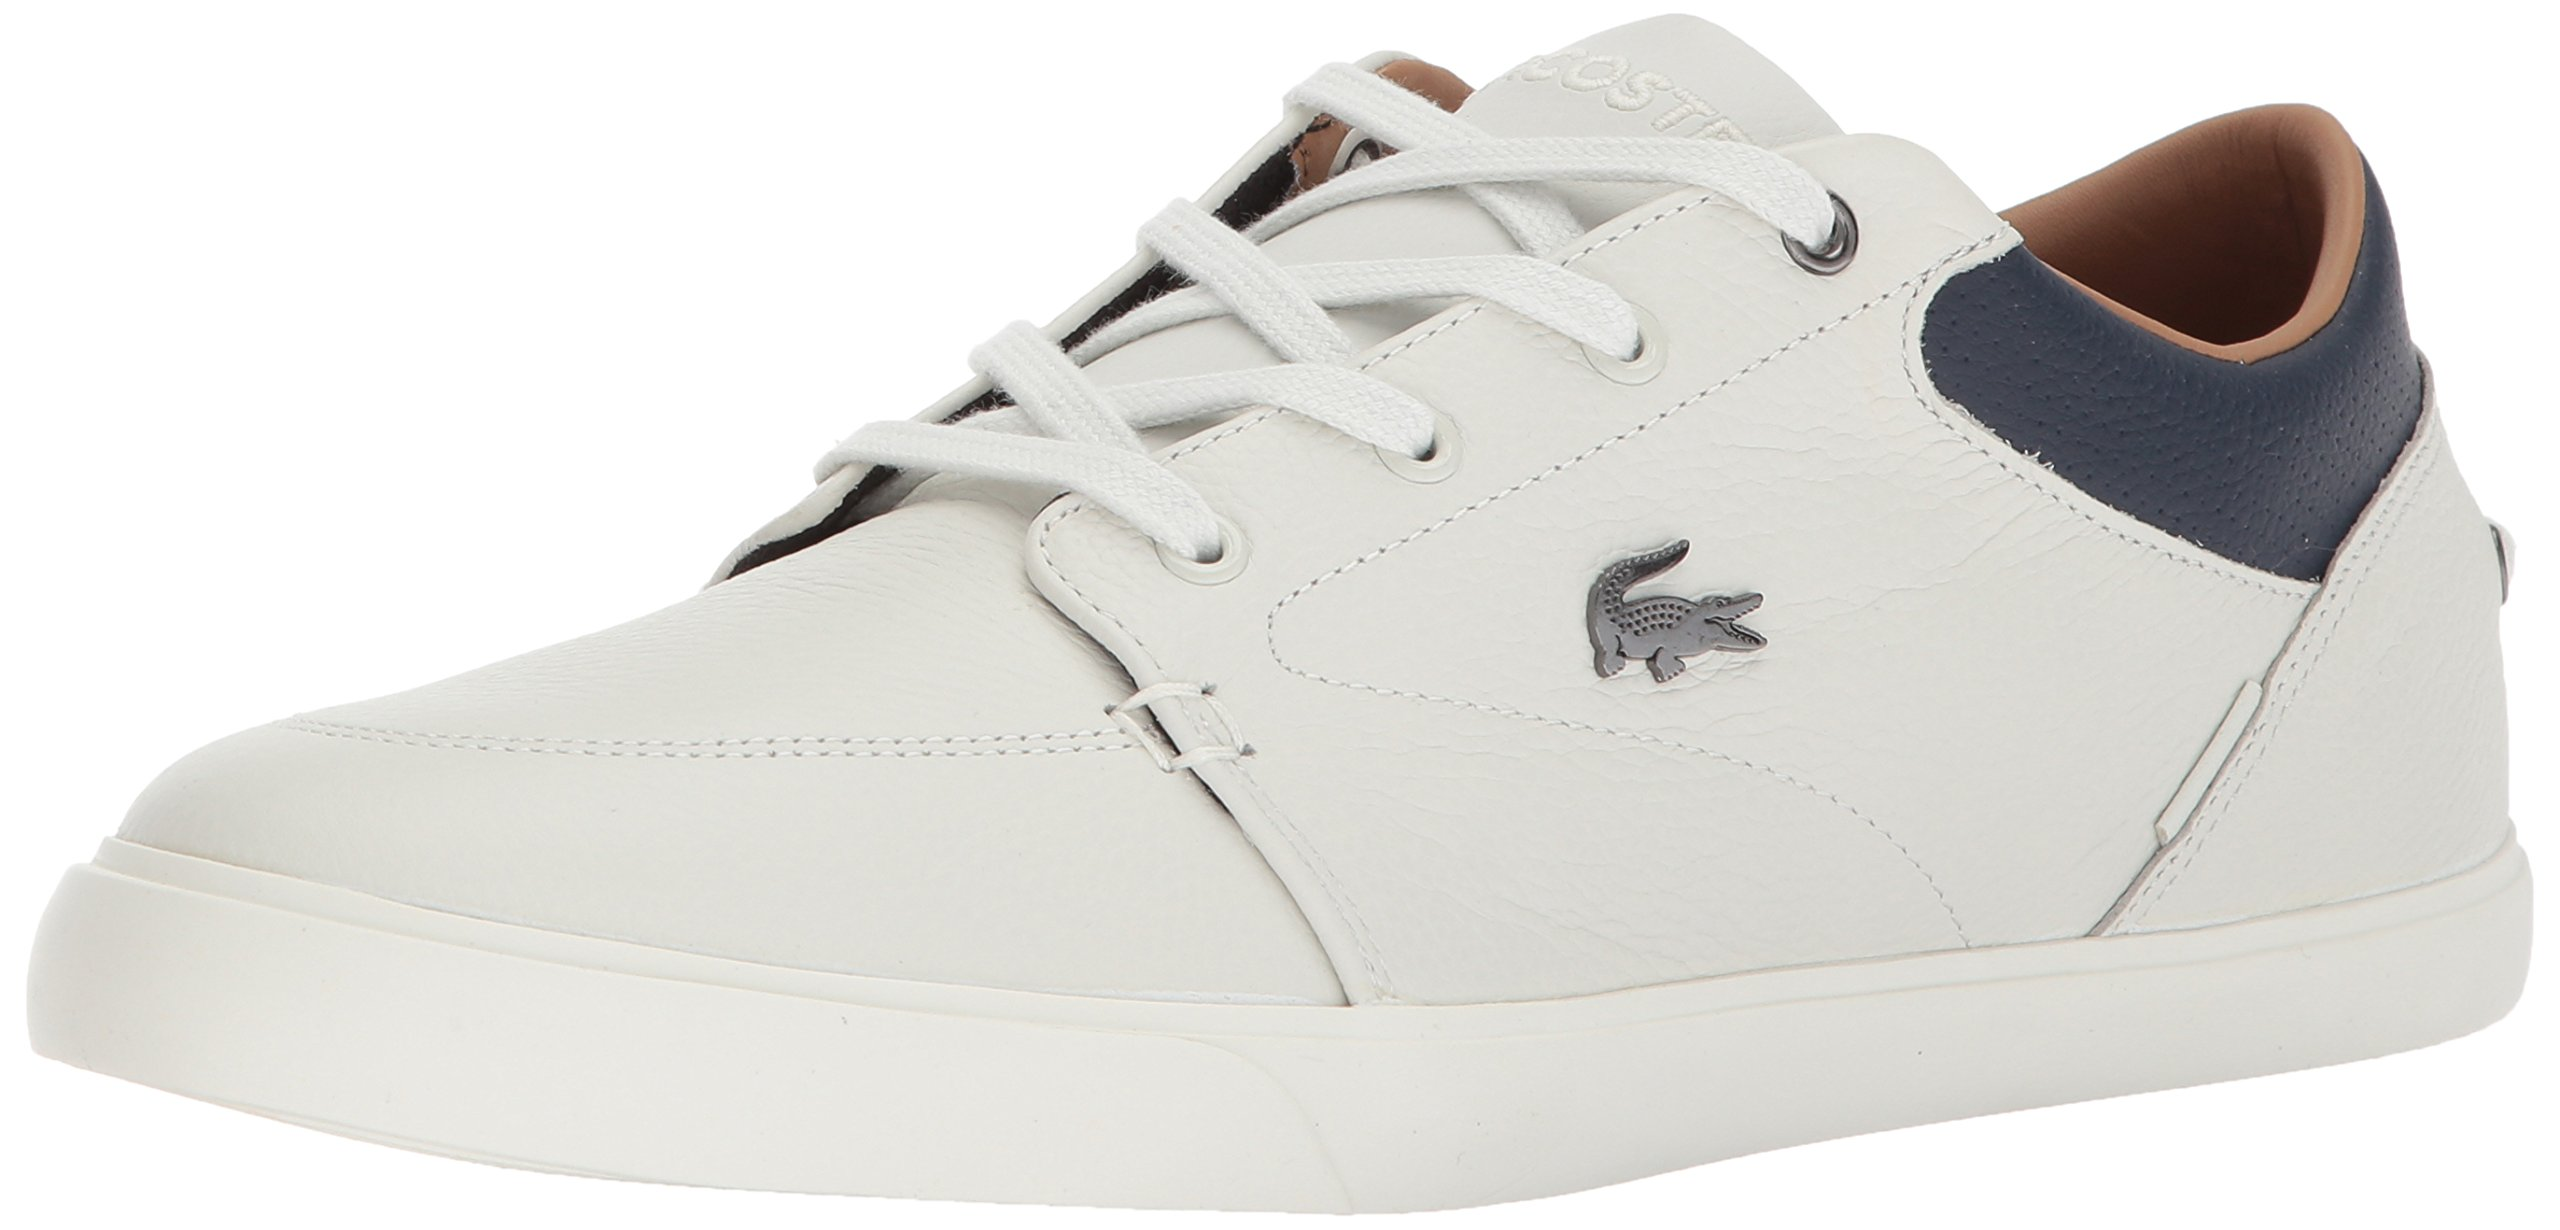 Sneakers, Off White/Nvy Leather